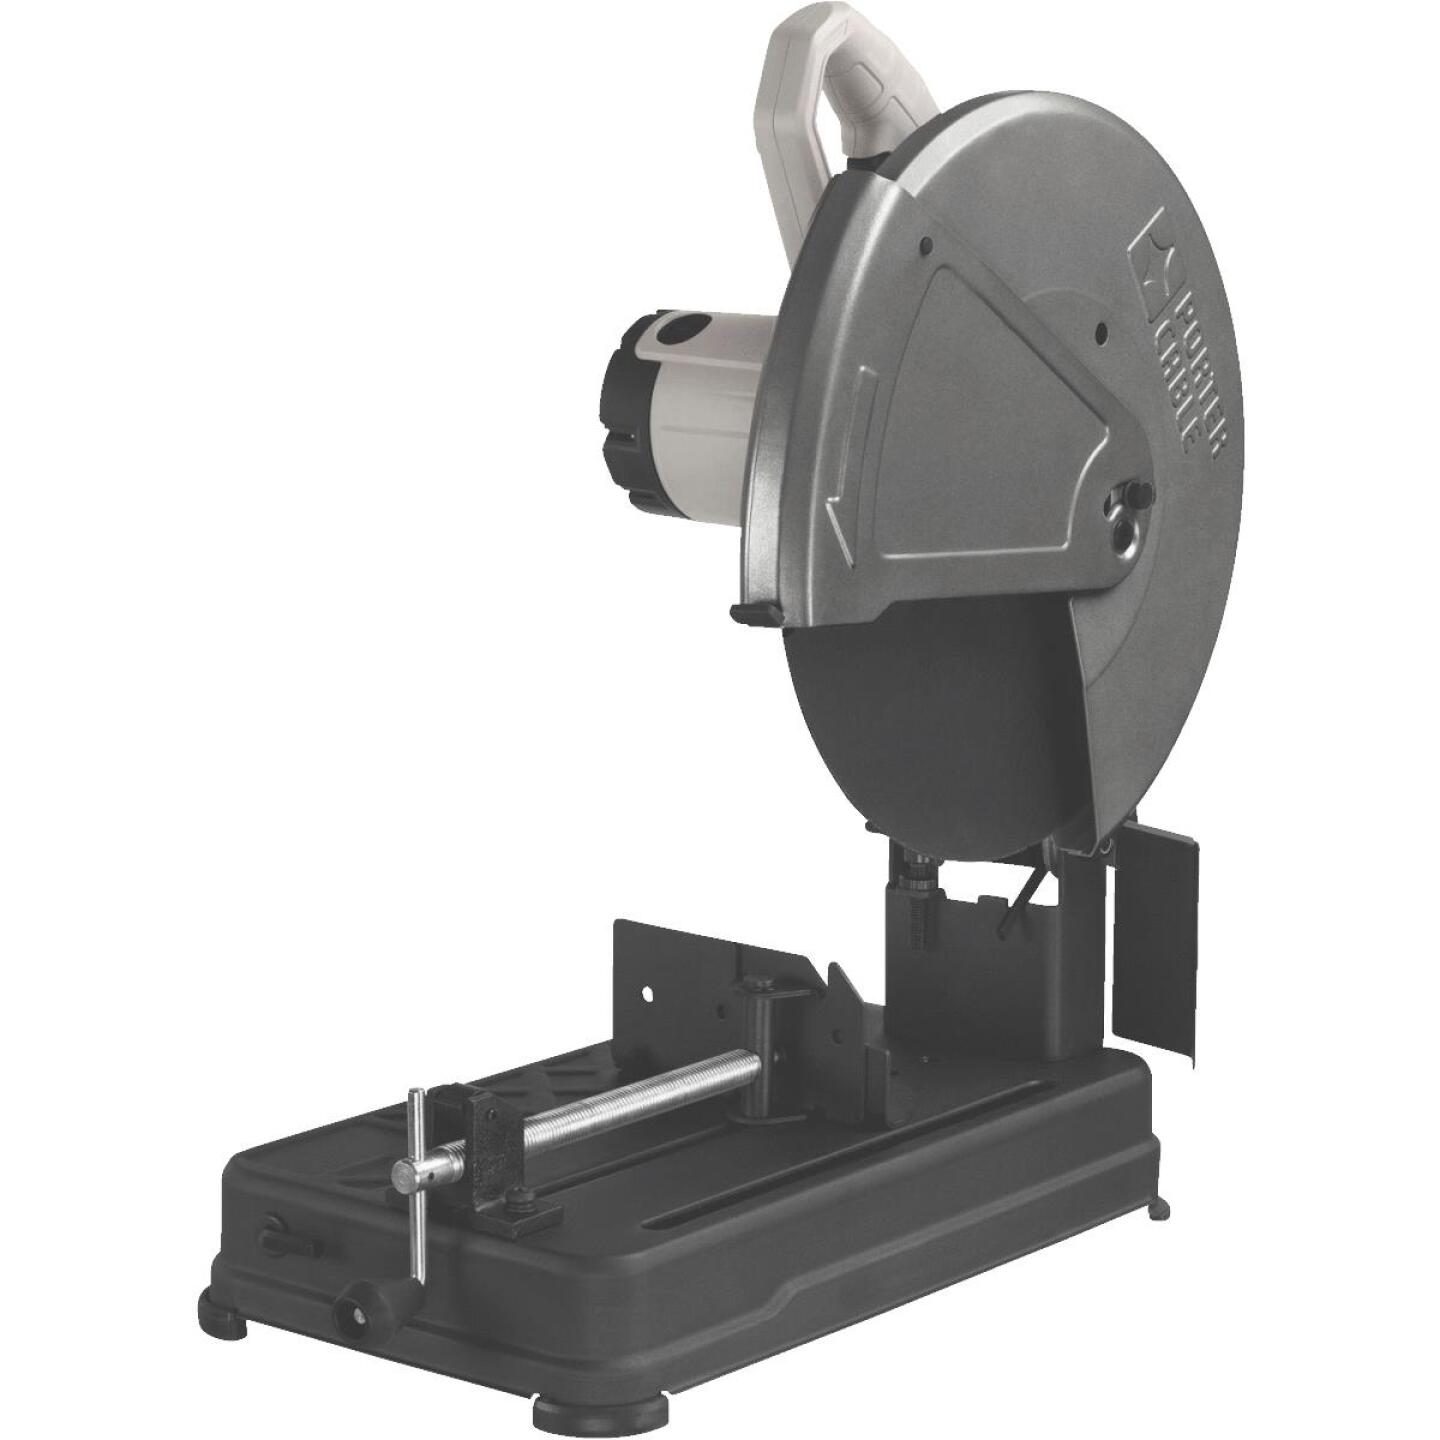 Porter Cable 14 In. 15-Amp Chop Saw Image 1